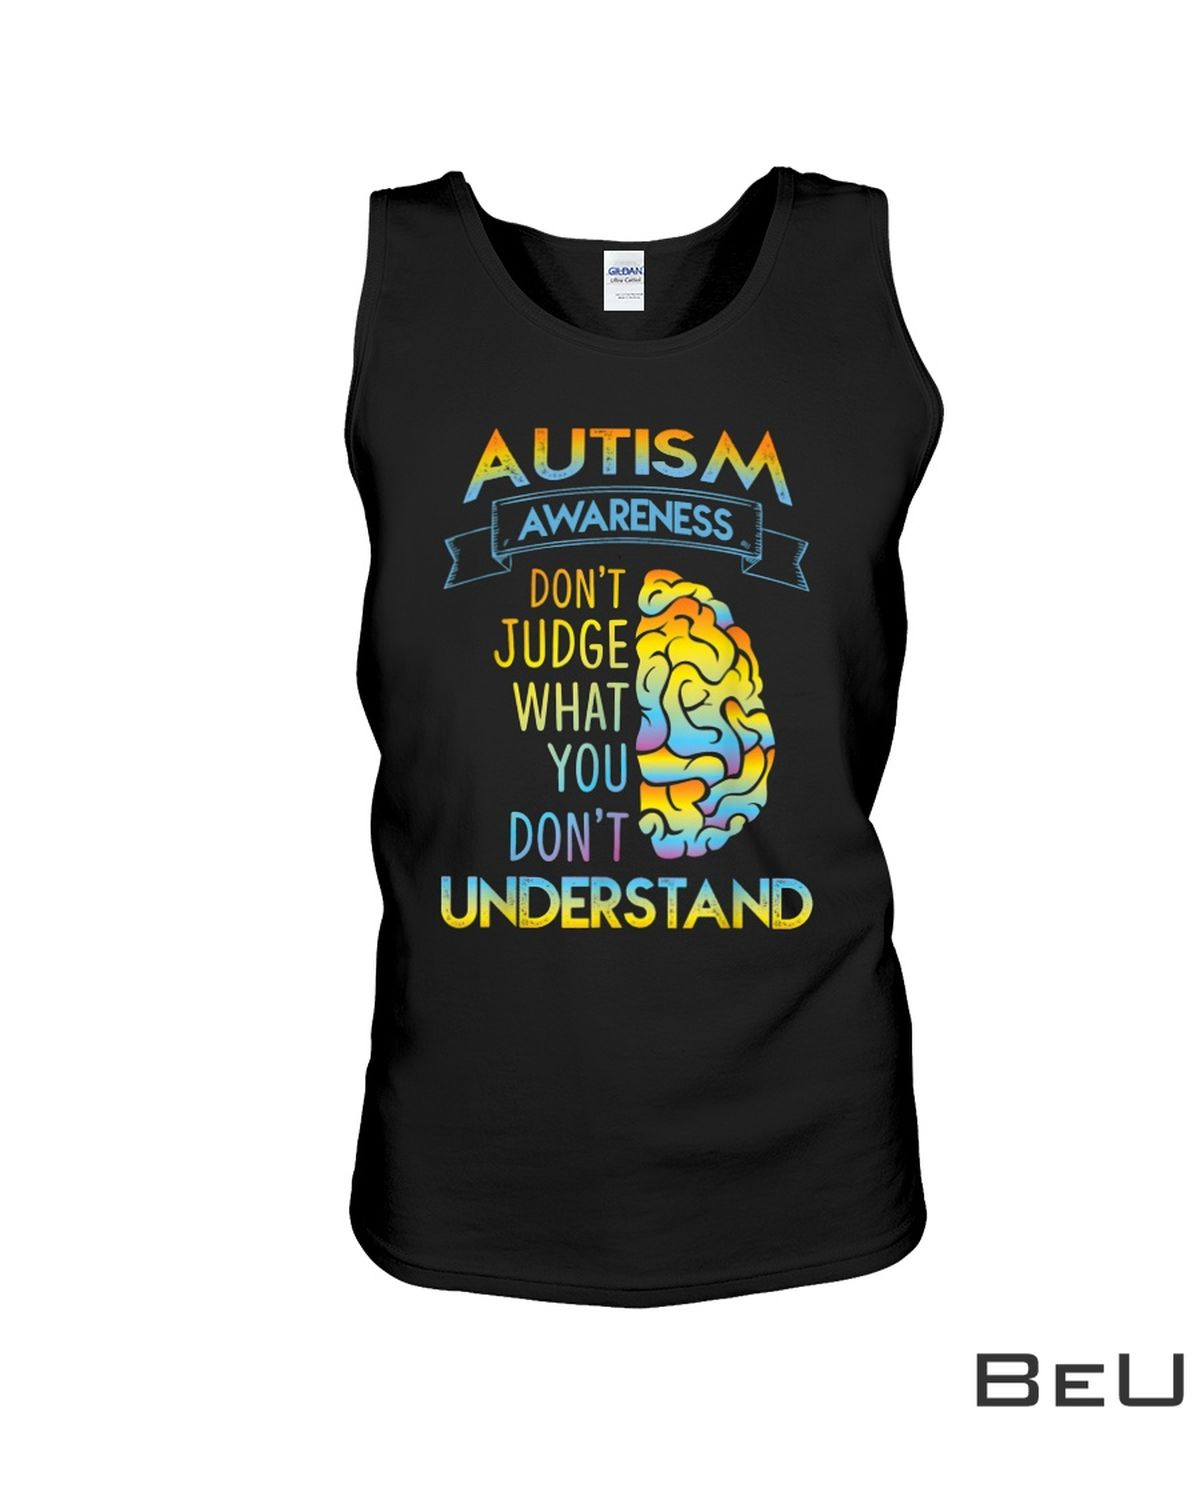 Autism Awareness Don't Judge What You Don't Understand Shirt c